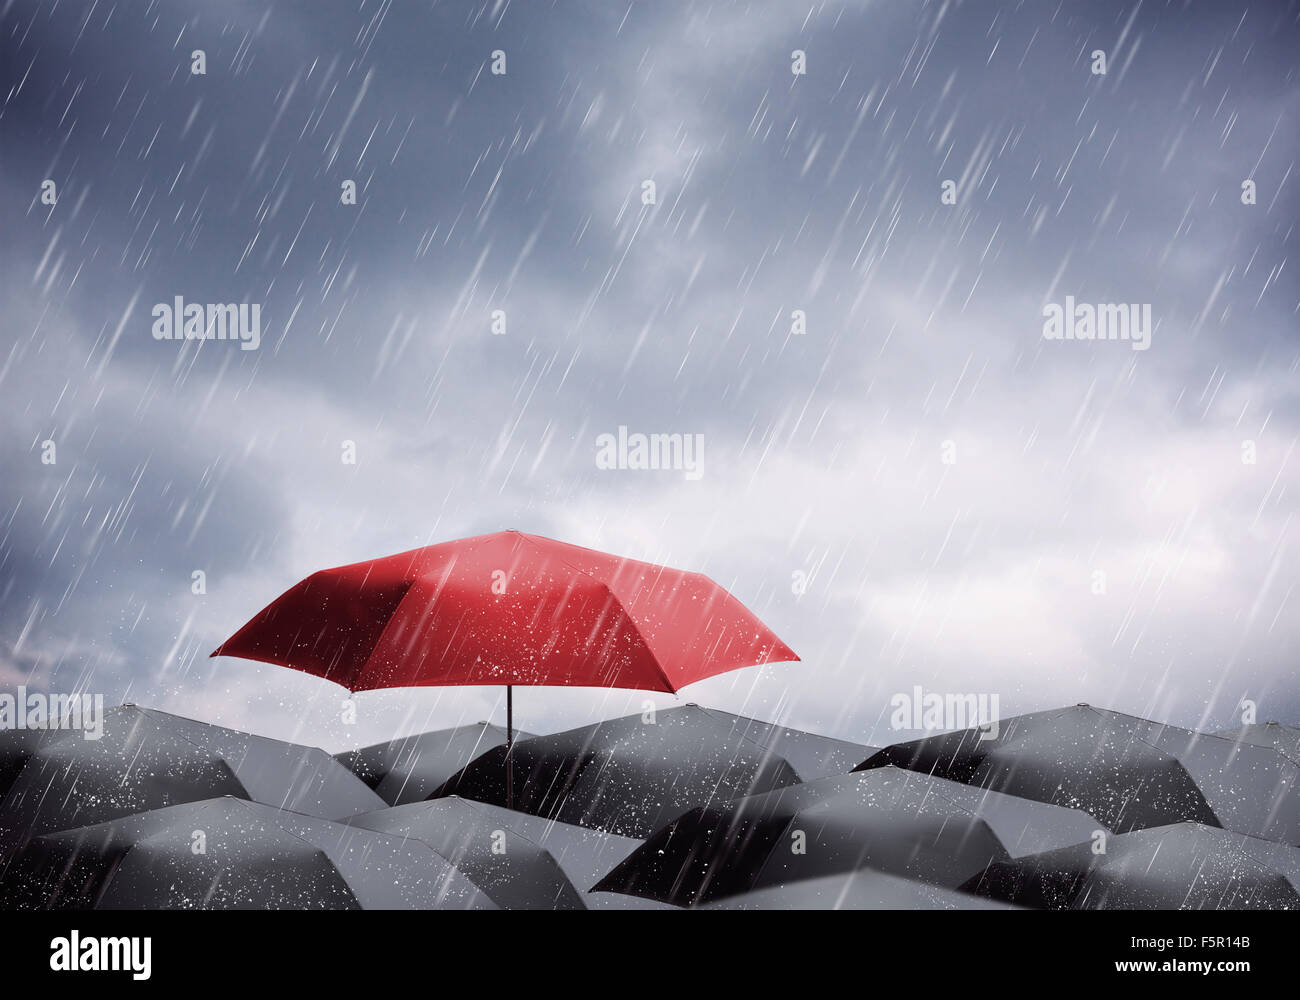 Black and one red umbrellas under rain and thunderstorm Stock Photo